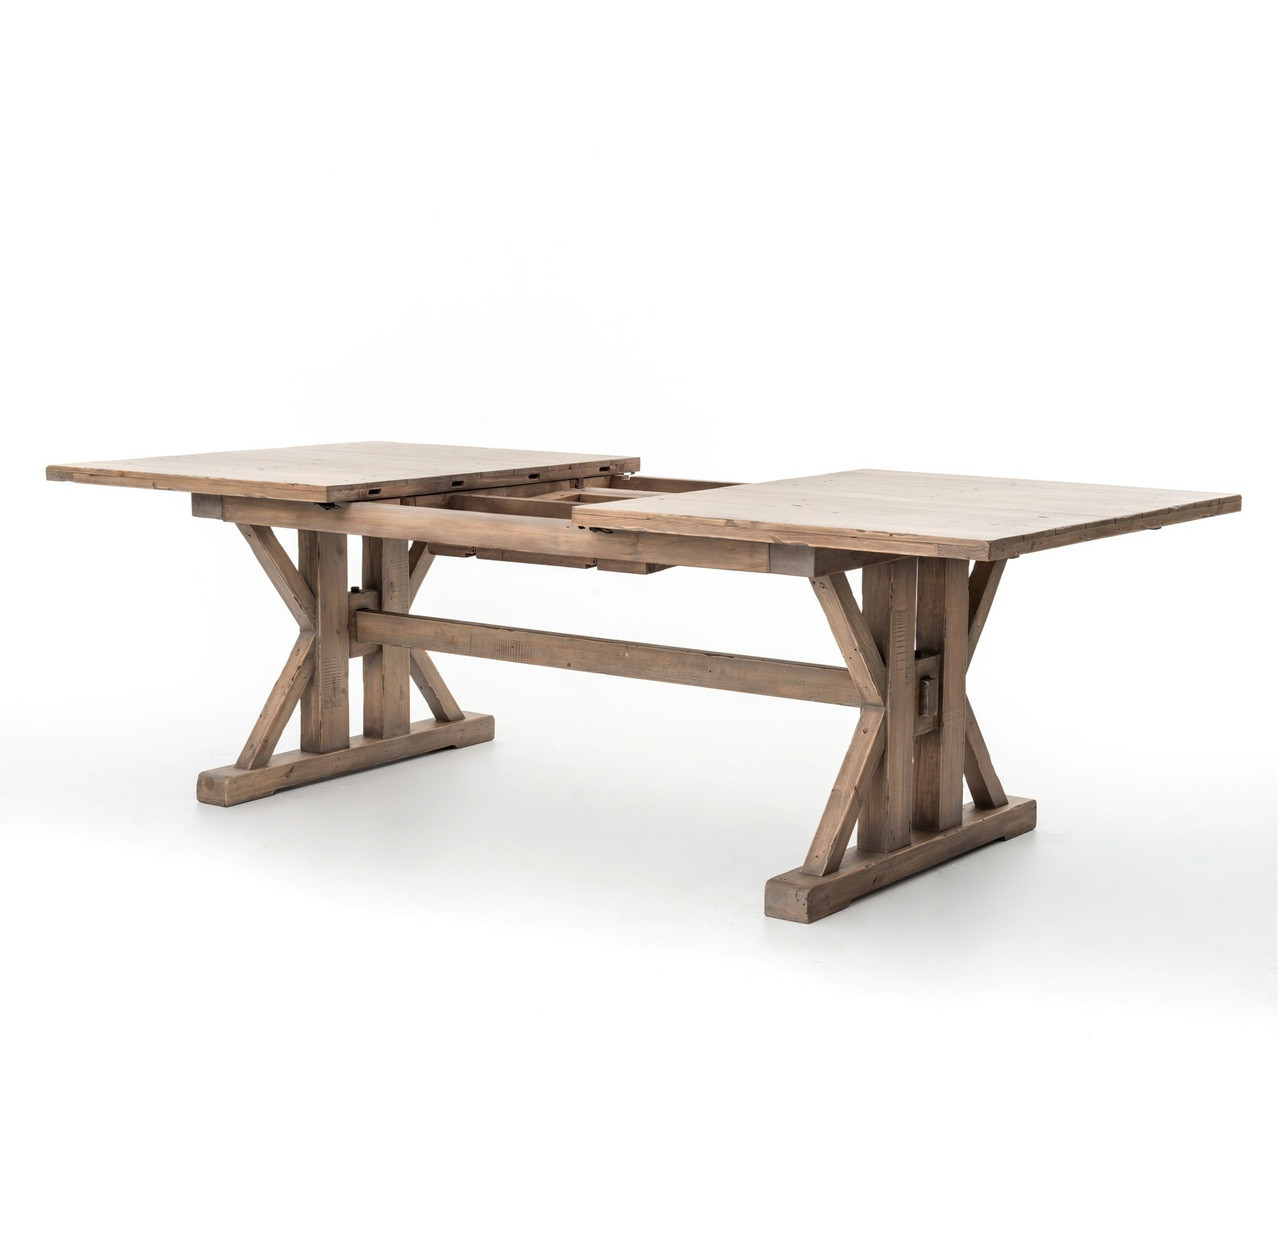 Dining Room Table Extension: Coastal Natural Wood Trestle Extension Dining Table 96